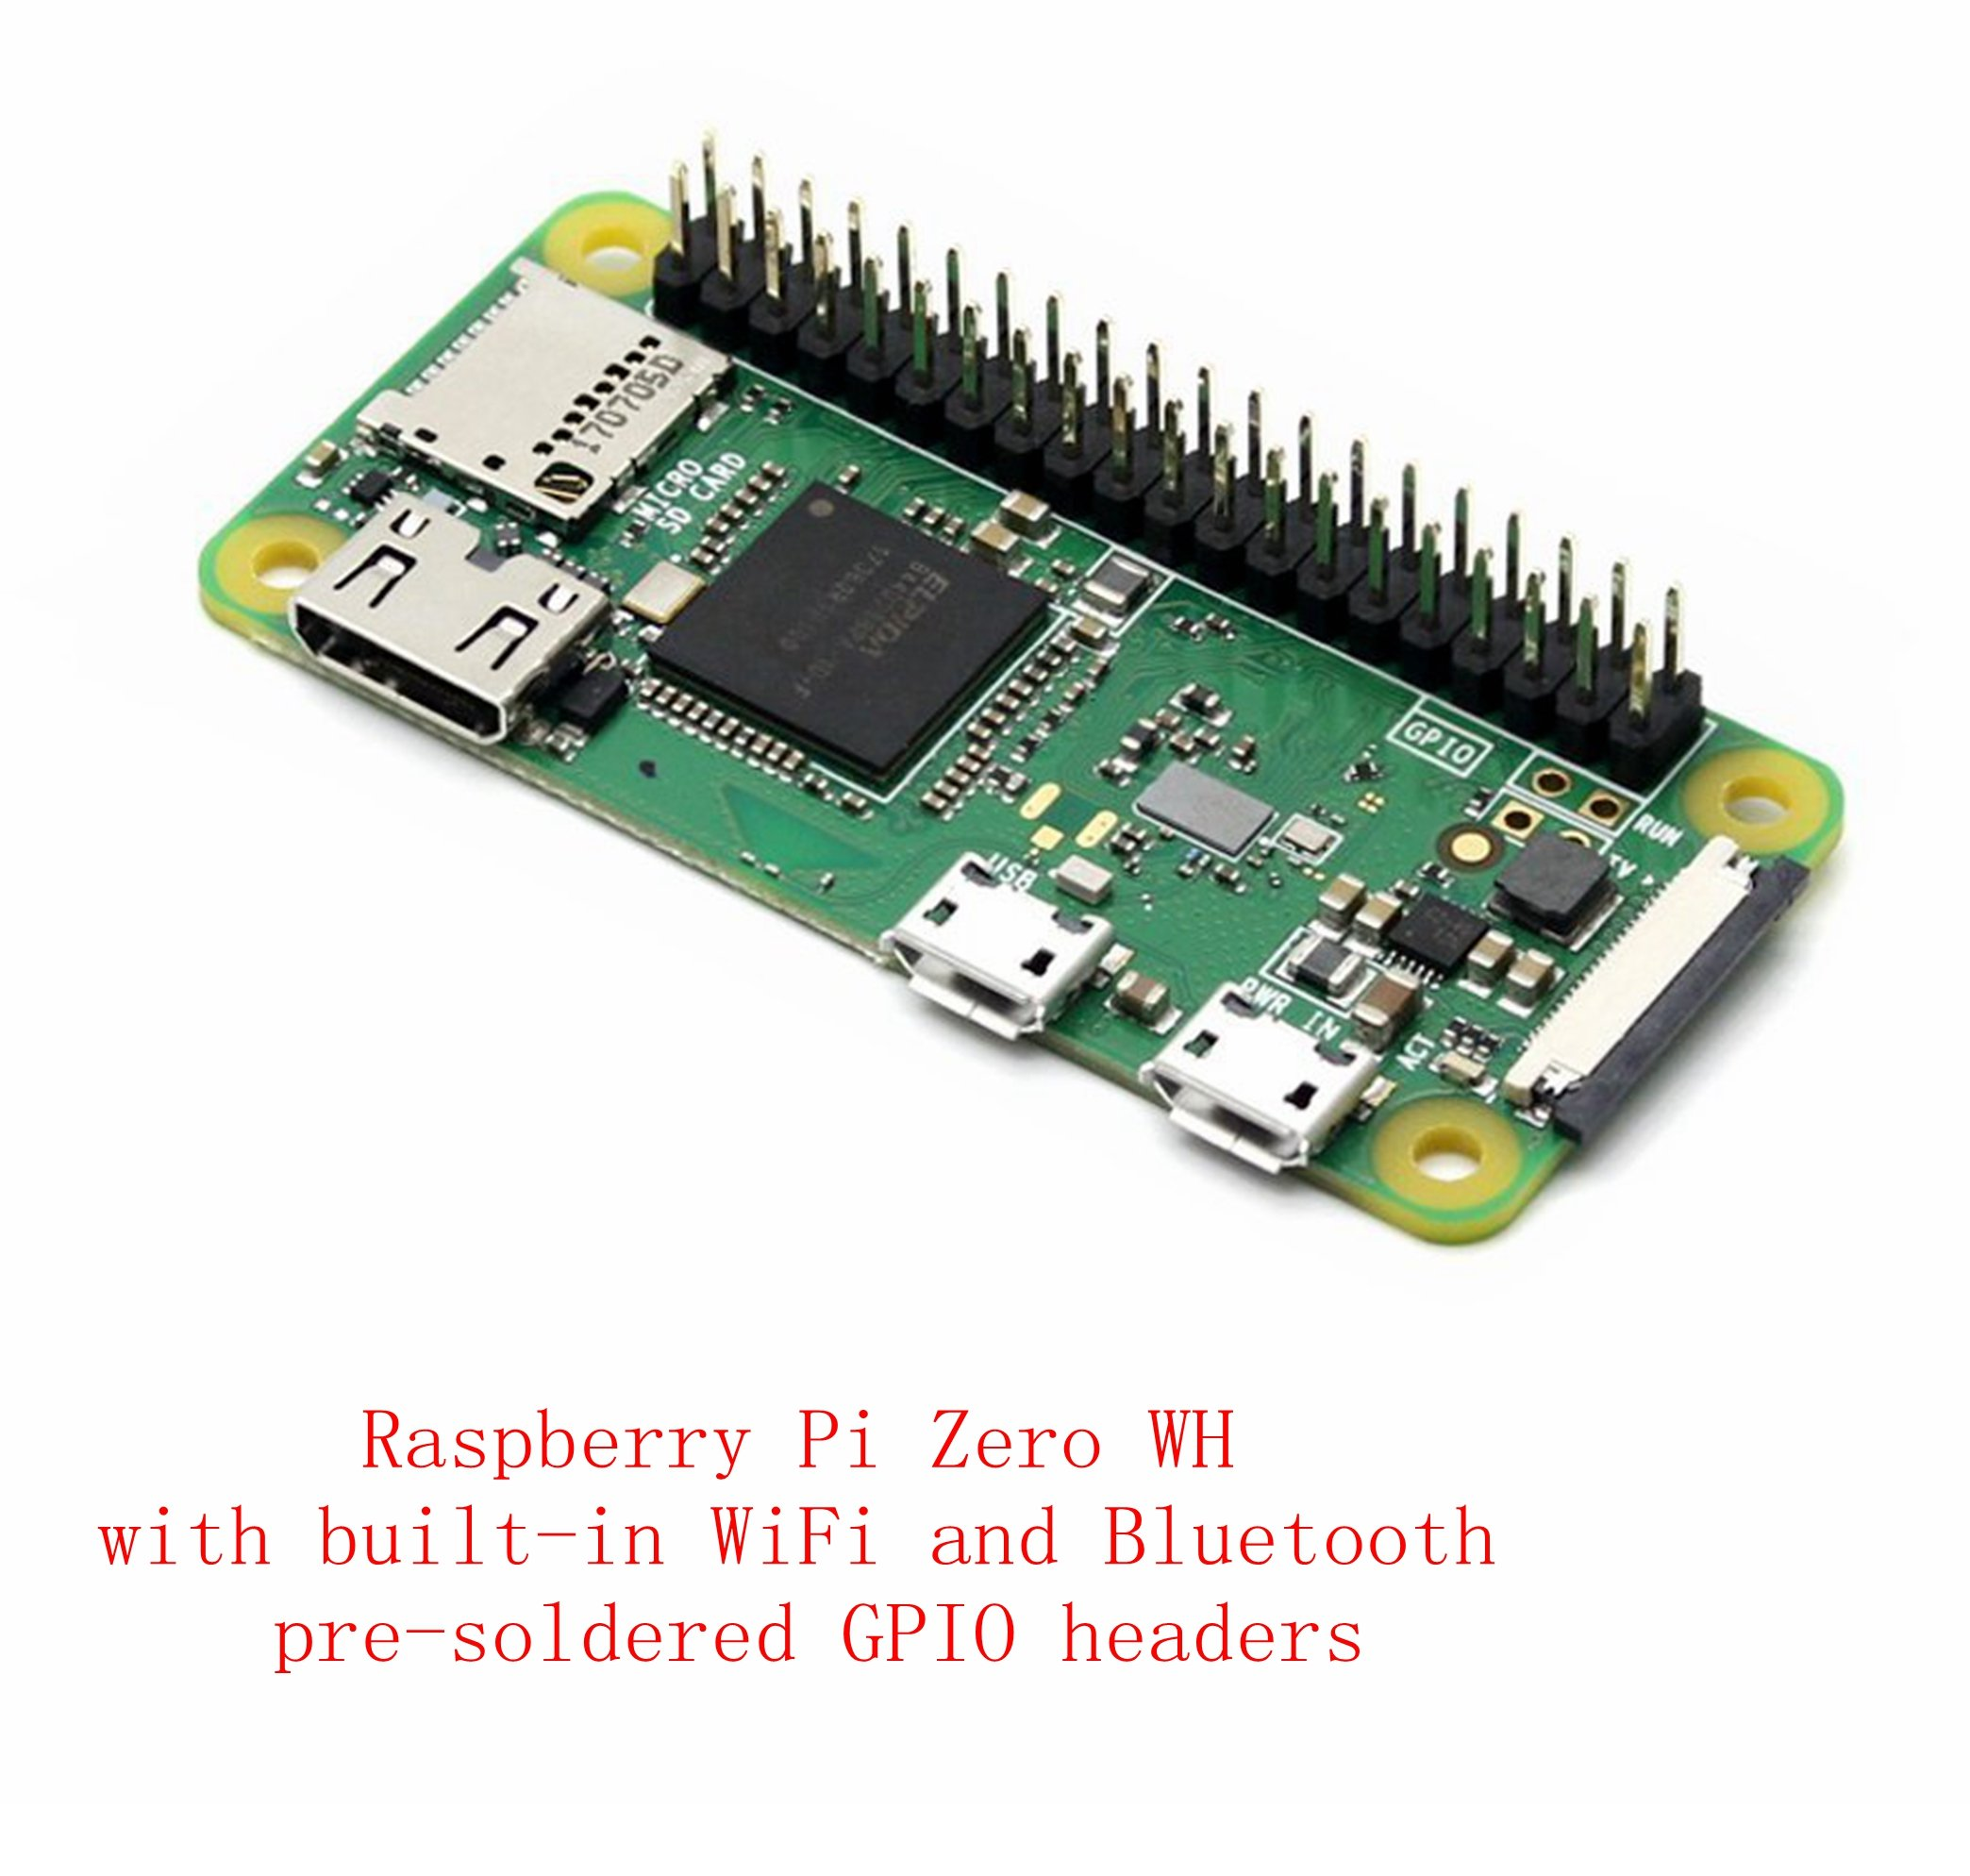 Pzsmocn Broadcom BCM2835,1GHz ARM11 Single-core processor,512MB RAM, Raspberry Pi Zero WH, with built-in WiFi and Bluetooth,40PIN pre-soldered GPIO Headers.